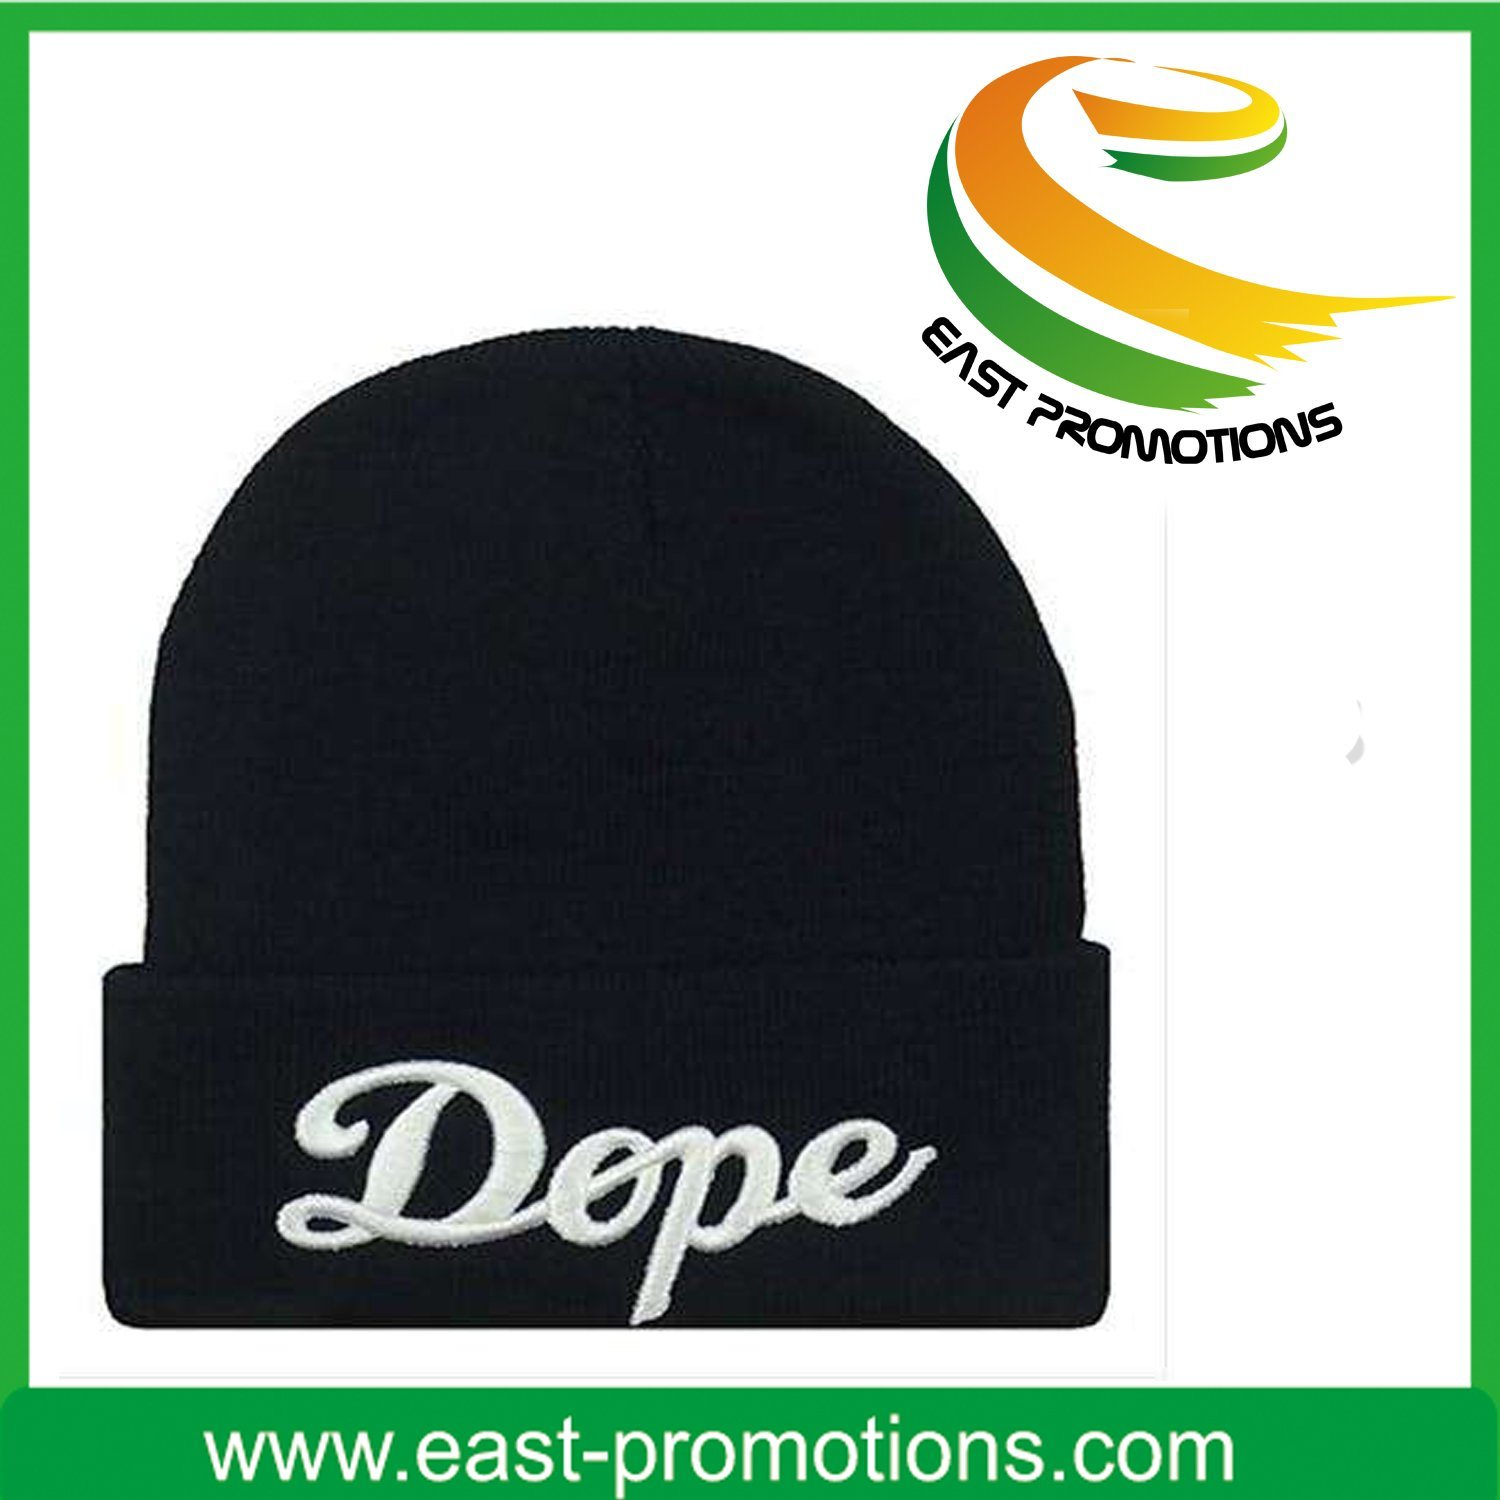 Promotional Item Knitted Warm Winter Beanie Hat